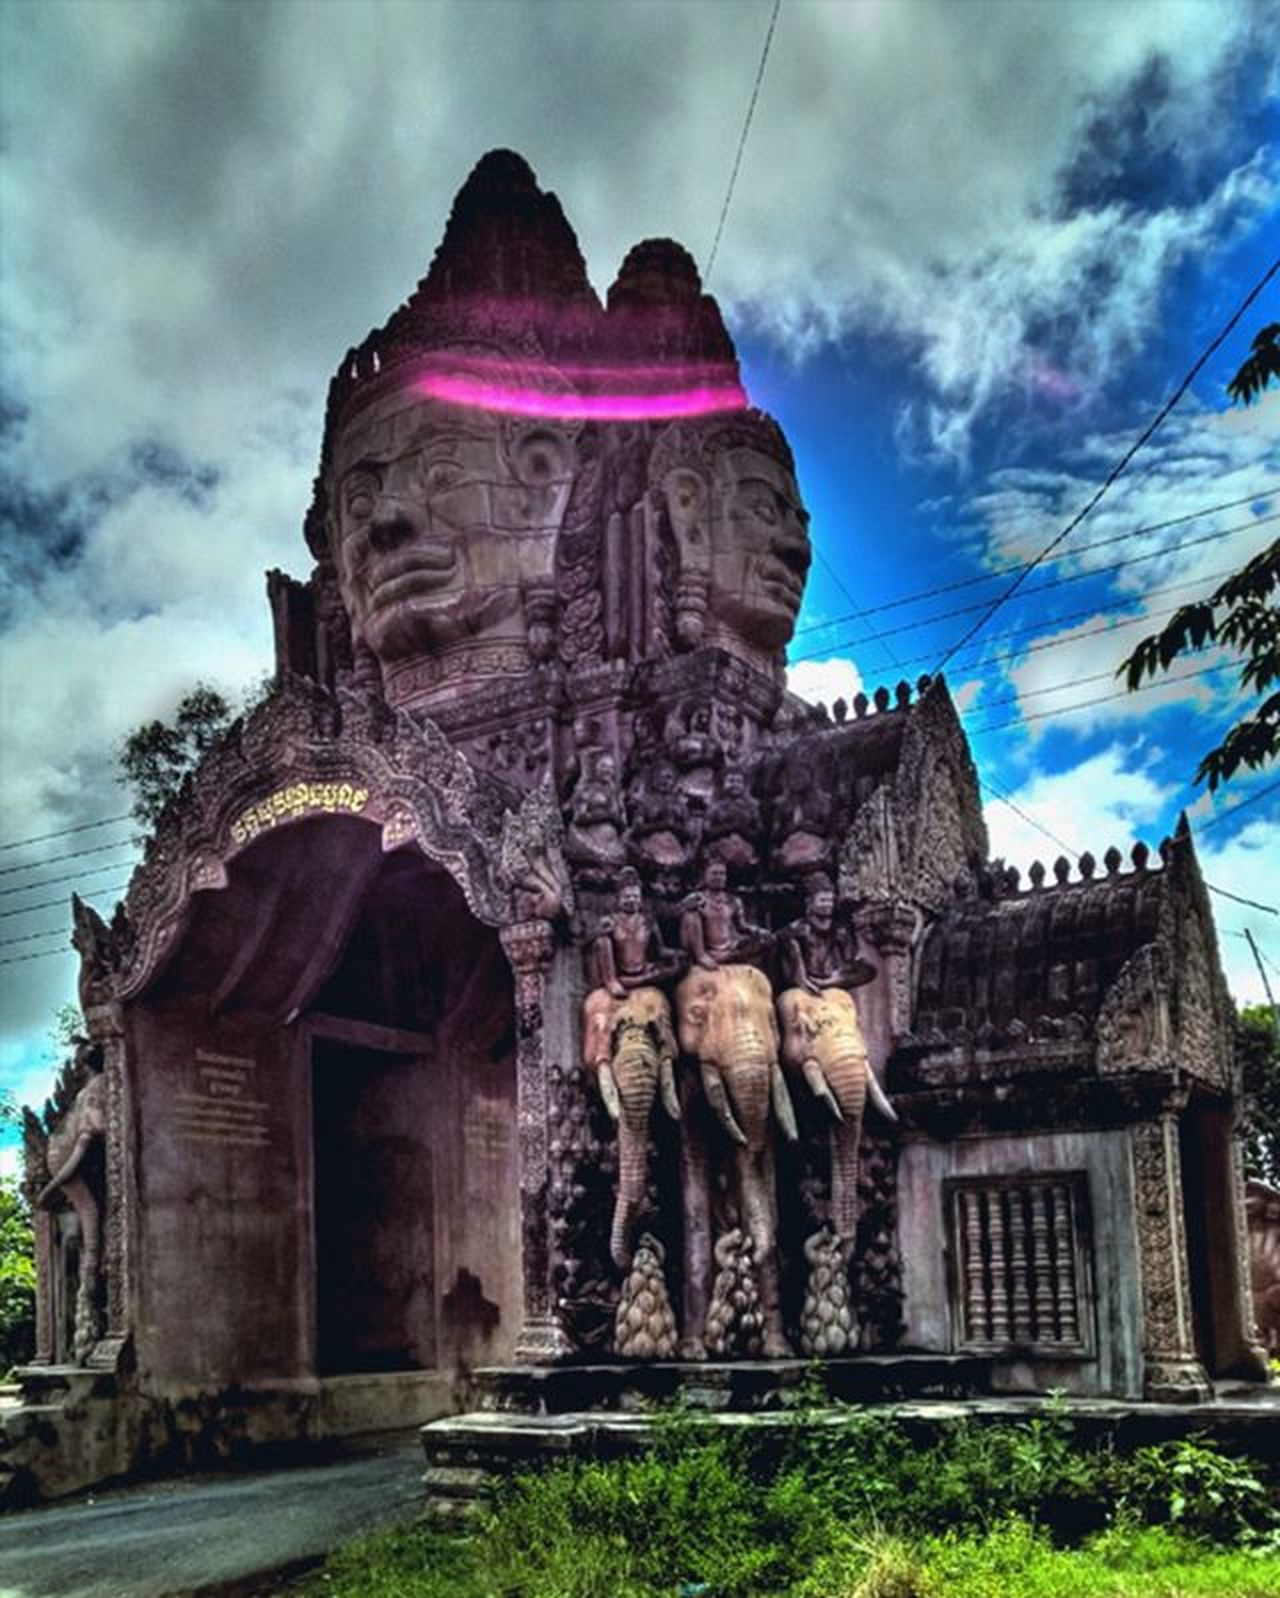 Entrance to Wat Sowann Thamareach. Lumia930 Mobilephotography WindowsPhonePhotography WeLoveLumia ShotOnMyLumia  Lumiaography Theappwhisperer Makemoments MoreLumiaLove GoodRadShot TheLumians Fhotoroom Lumia PicHitMe EyeEm Eyewm_o MenchFeature Photography Nban NbanFamily Pixelpanda Visitorg Natgeo Natgeotravel Natgeoyourshot Cambodia PhnomPenh @fhotoroom_ @thelumians @lumiavoices @pichitme @windowsphonephotography @microsoftwindowsphone @microsoftlumiaphotography @mobile_photography @moment_lens @goodradshot @mobilephotoblog @street_hunters @lumia @pixel_panda_ @eyeem_o @photocrowd @photoadvices @nothingbutanokia @nothinbutanokia